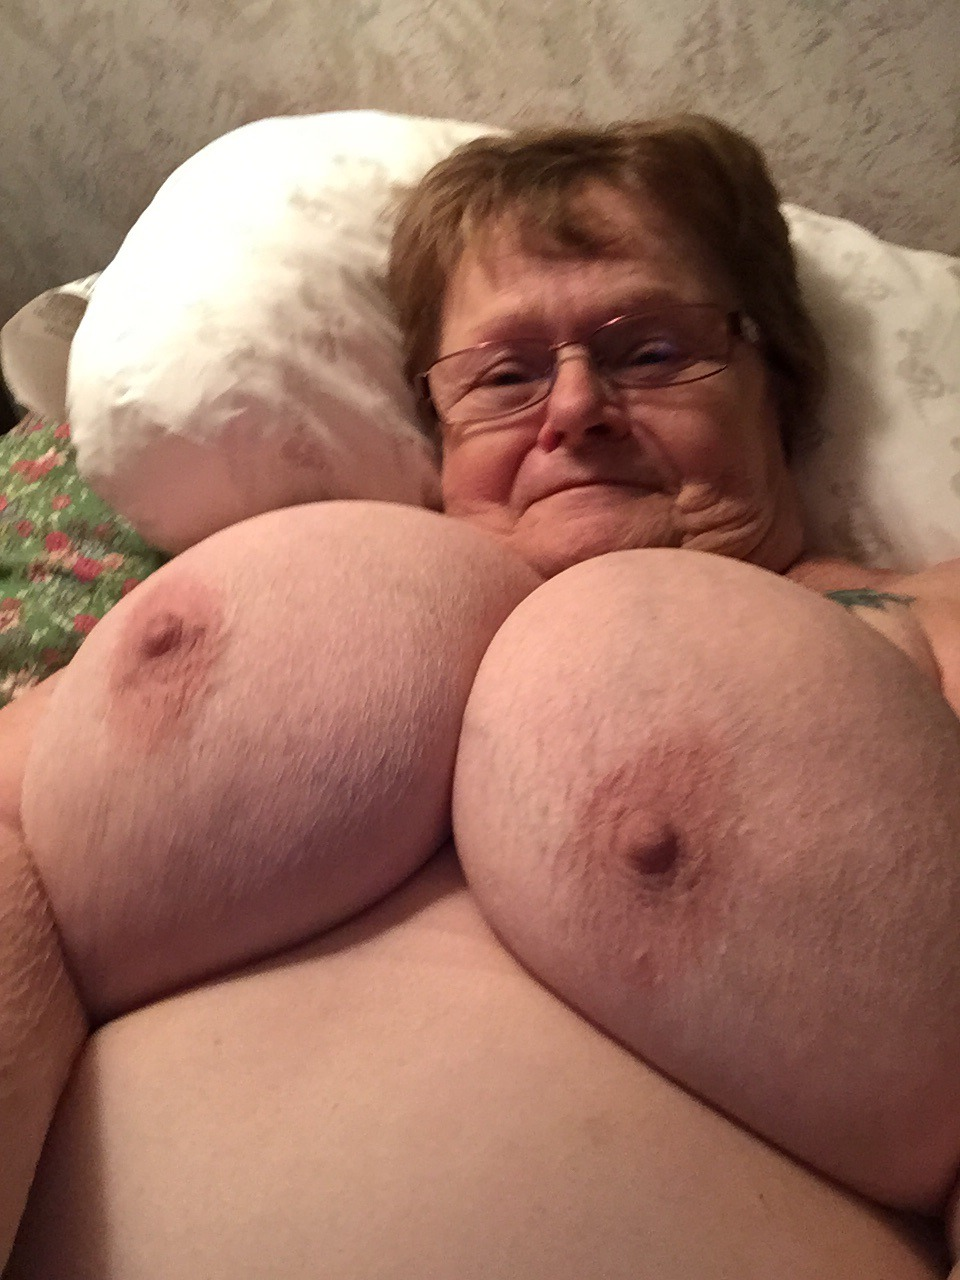 Bad turn. Mature bbw naked topic, very